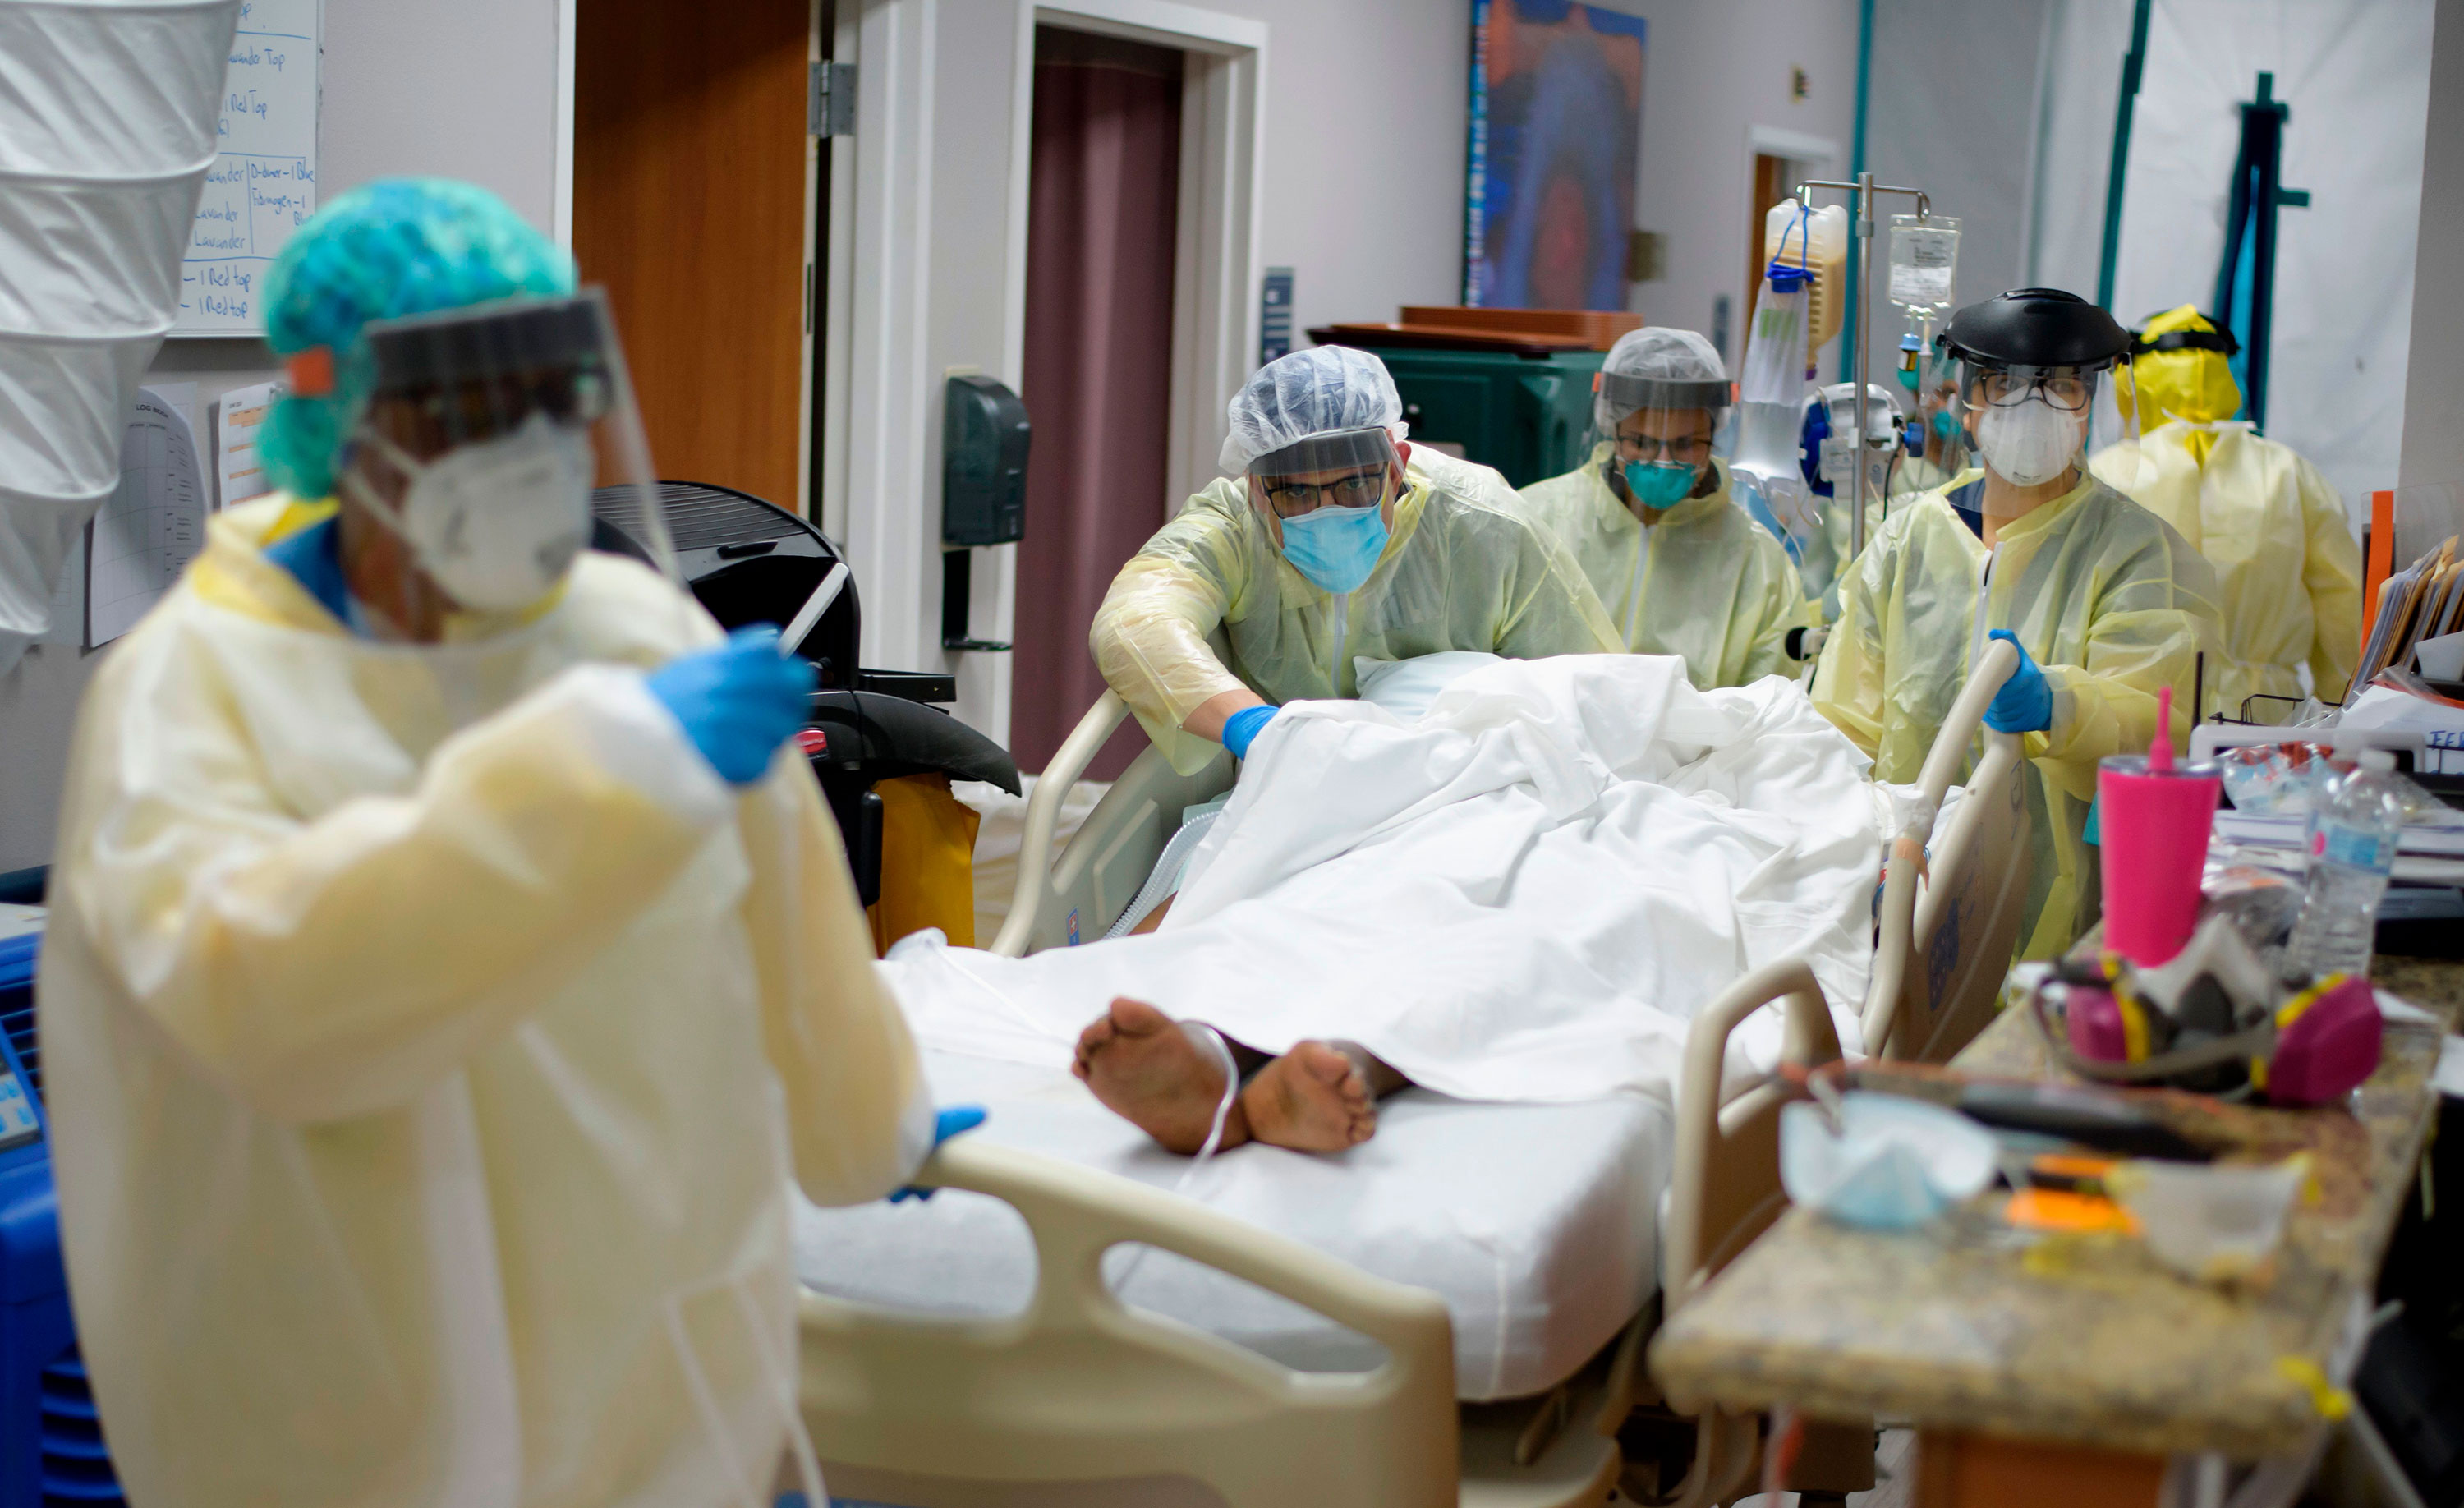 Healthcare workers move a patient in the Covid-19 Unit at United Memorial Medical Center in Houston, Texas, on July 2